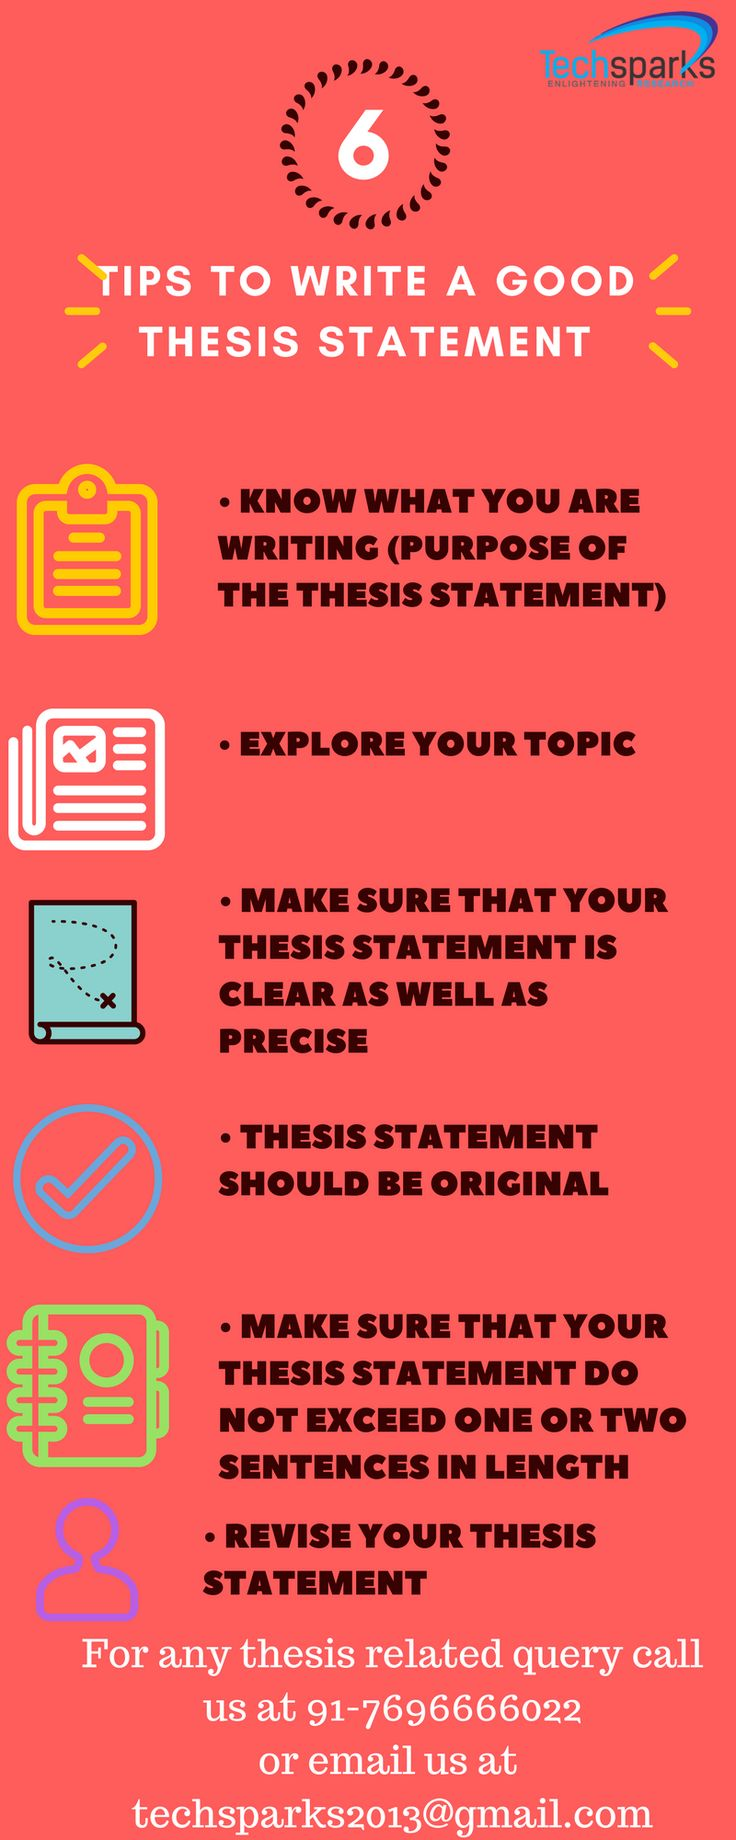 Tips for writing a thesis statement are